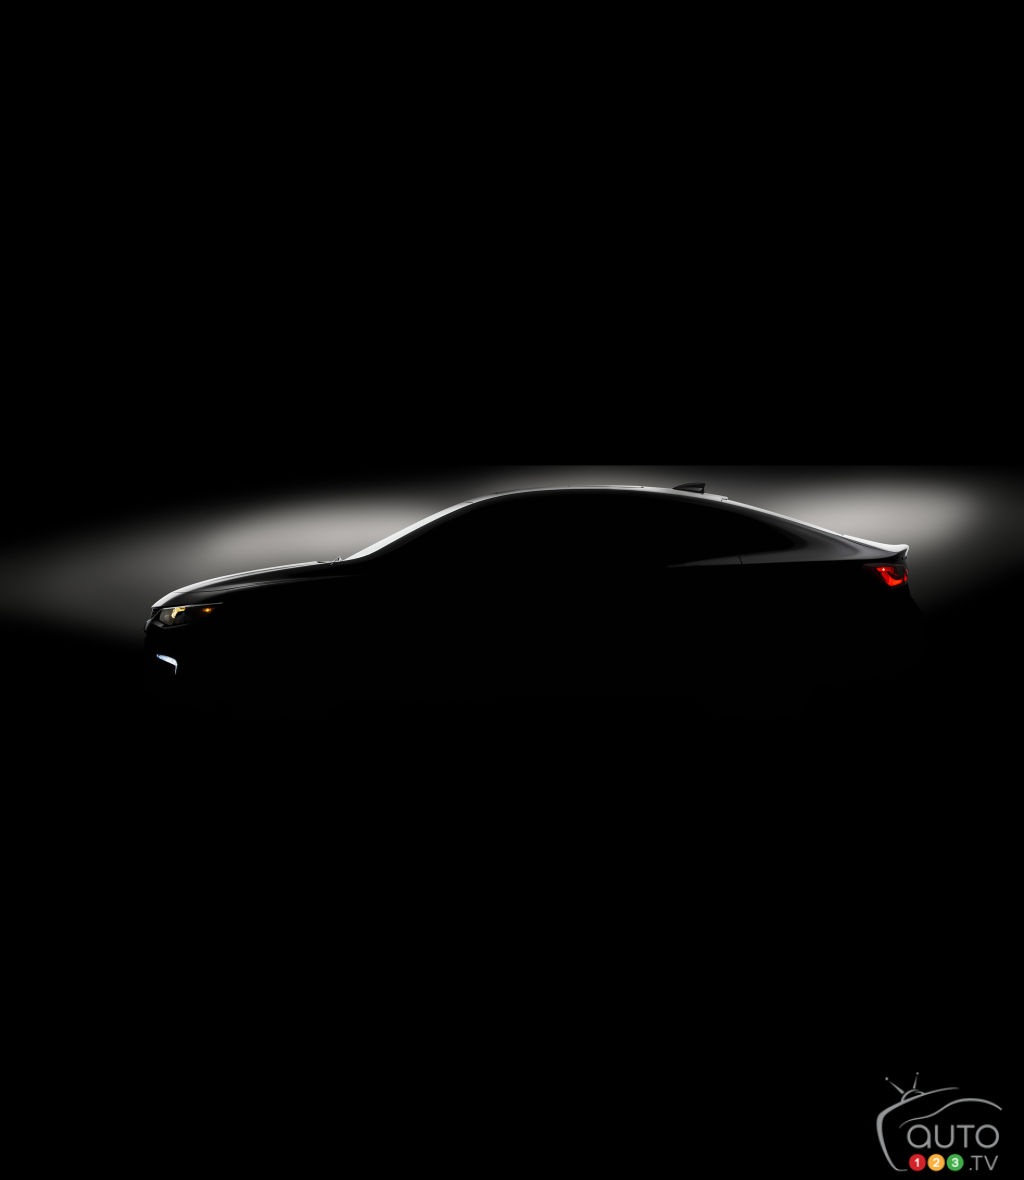 2015 New York Auto Show: Chevrolet to unveil redesigned 2016 Malibu